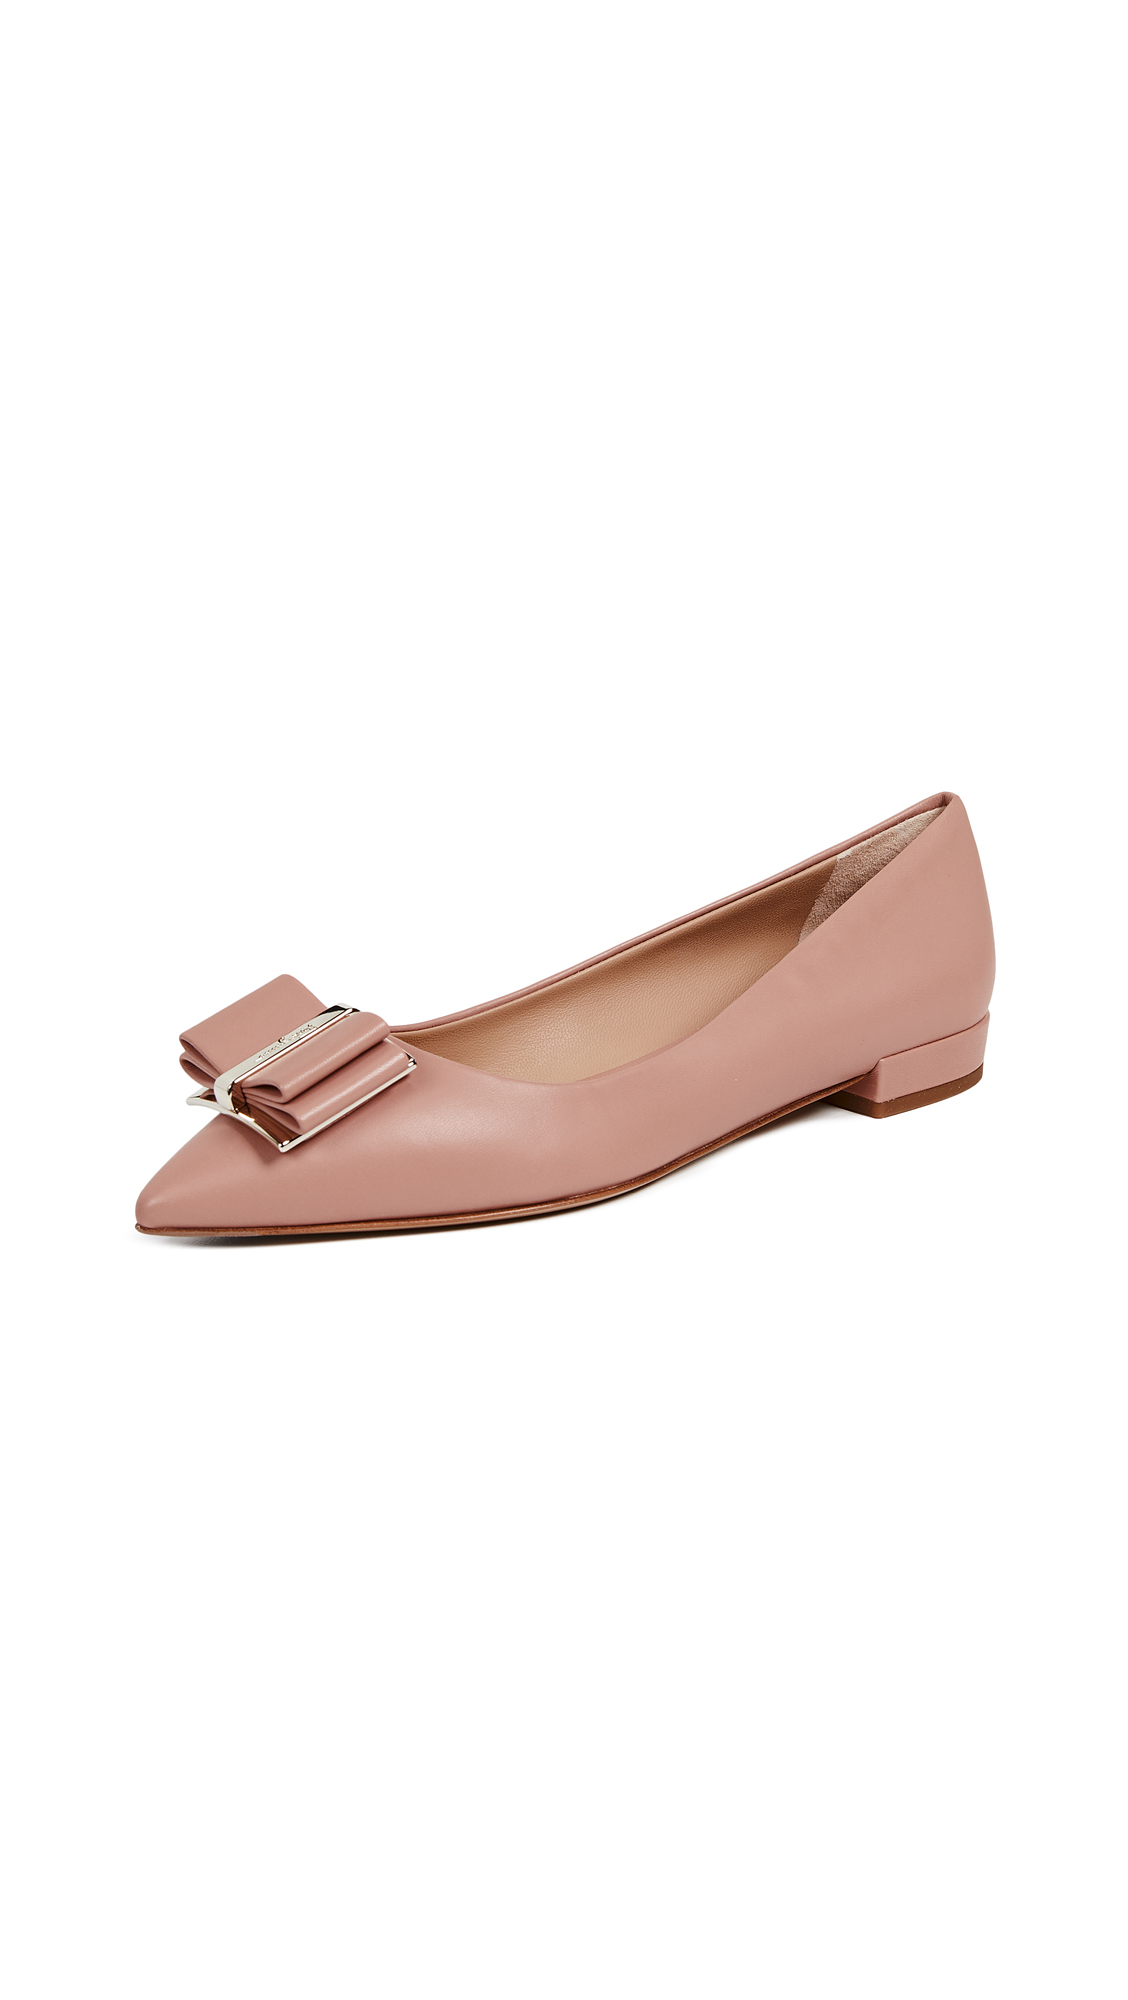 Salvatore Ferragamo Zeri 10 Flats - New Blush